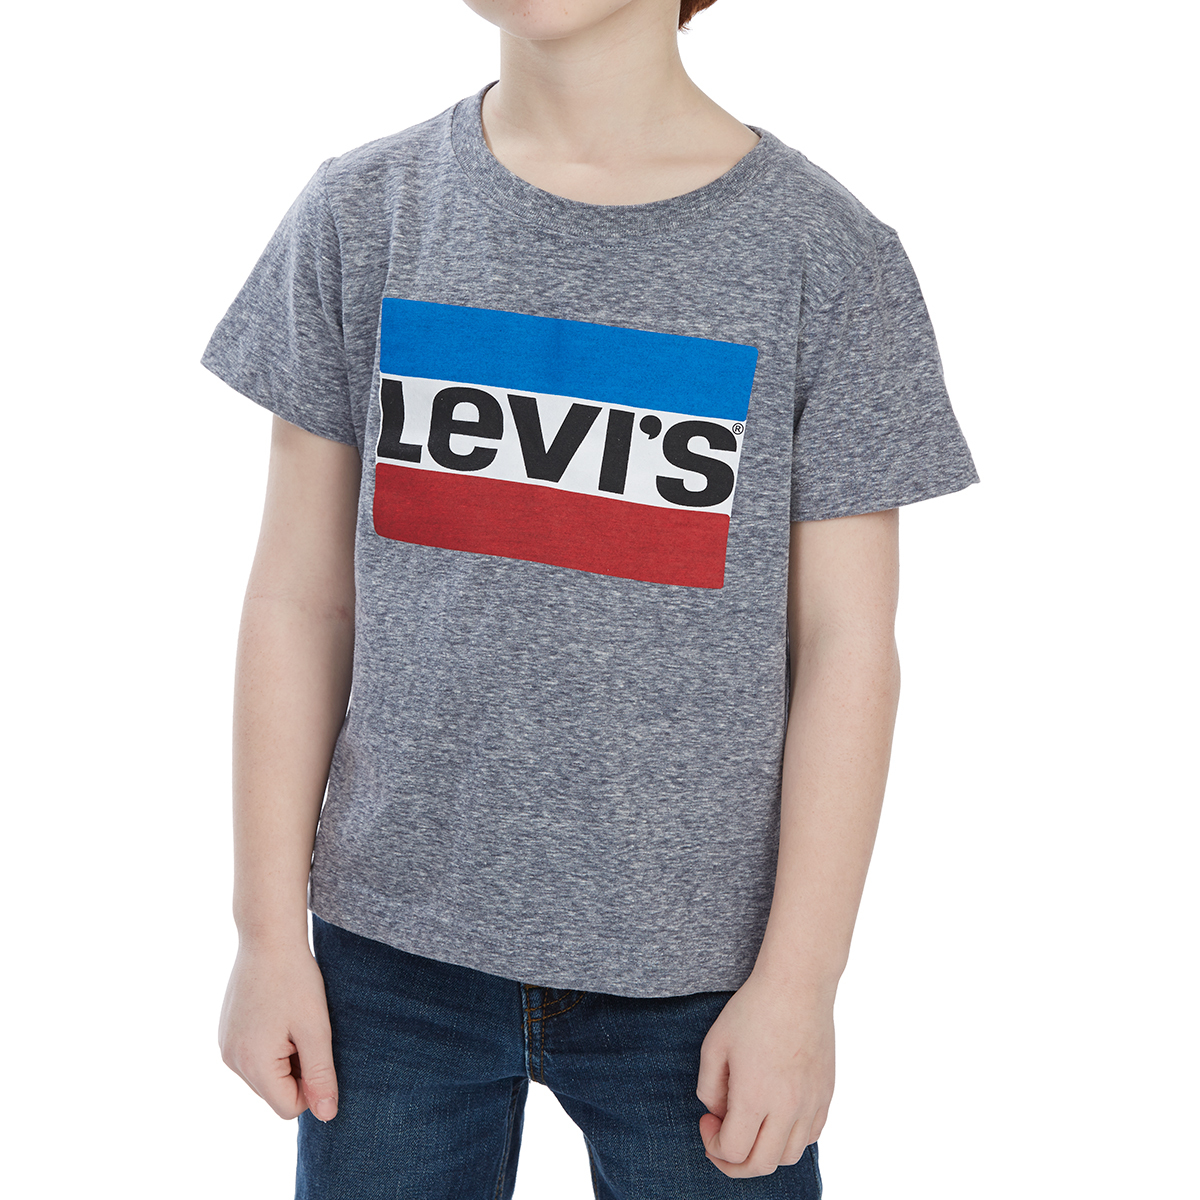 Levi's Toddler Boys' Graphic Short-Sleeve Tee - Blue, 3T